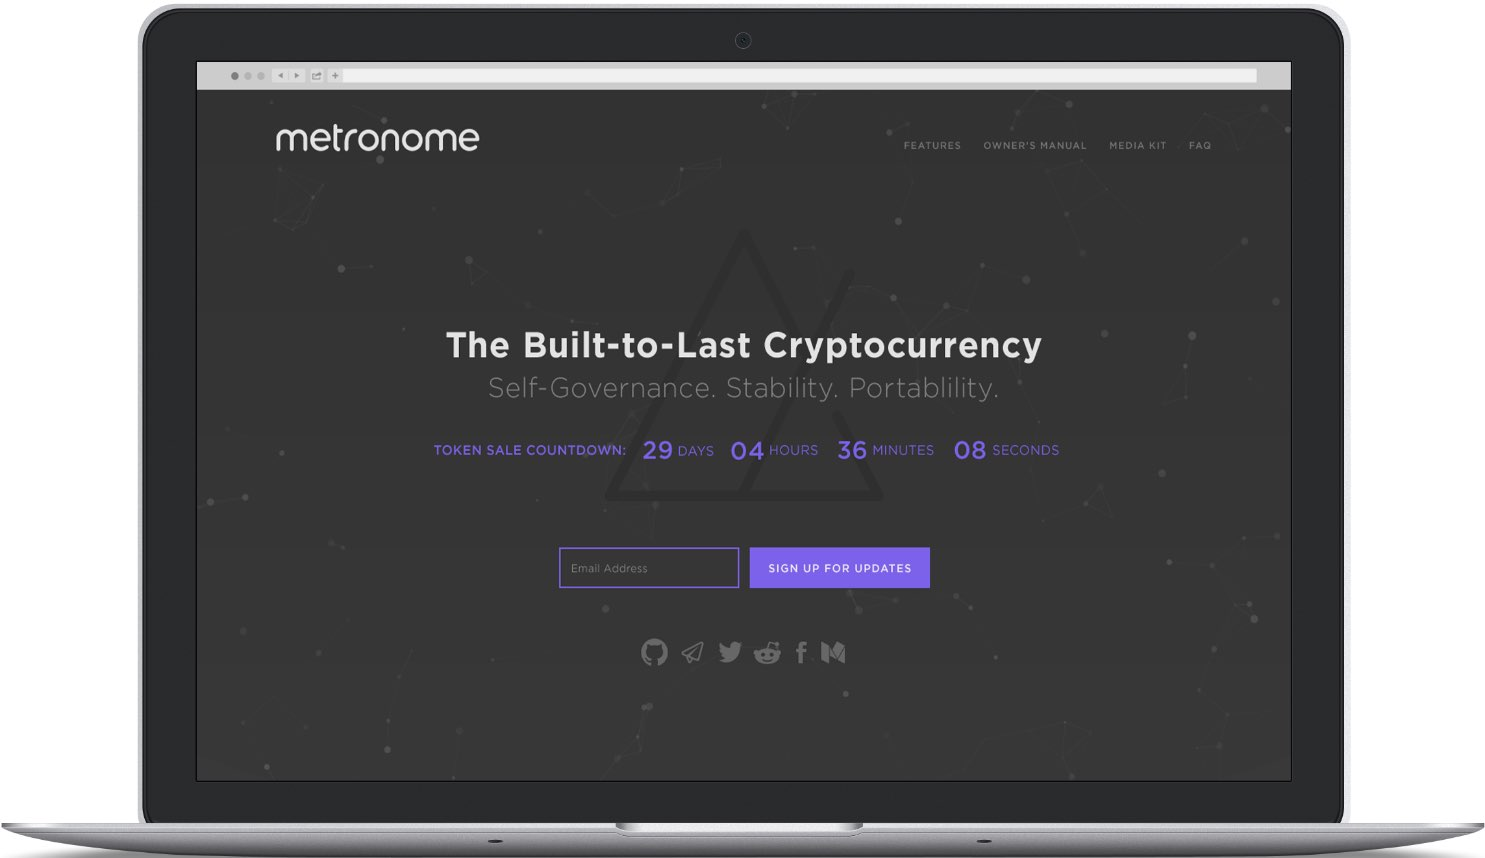 Metronome website on laptop